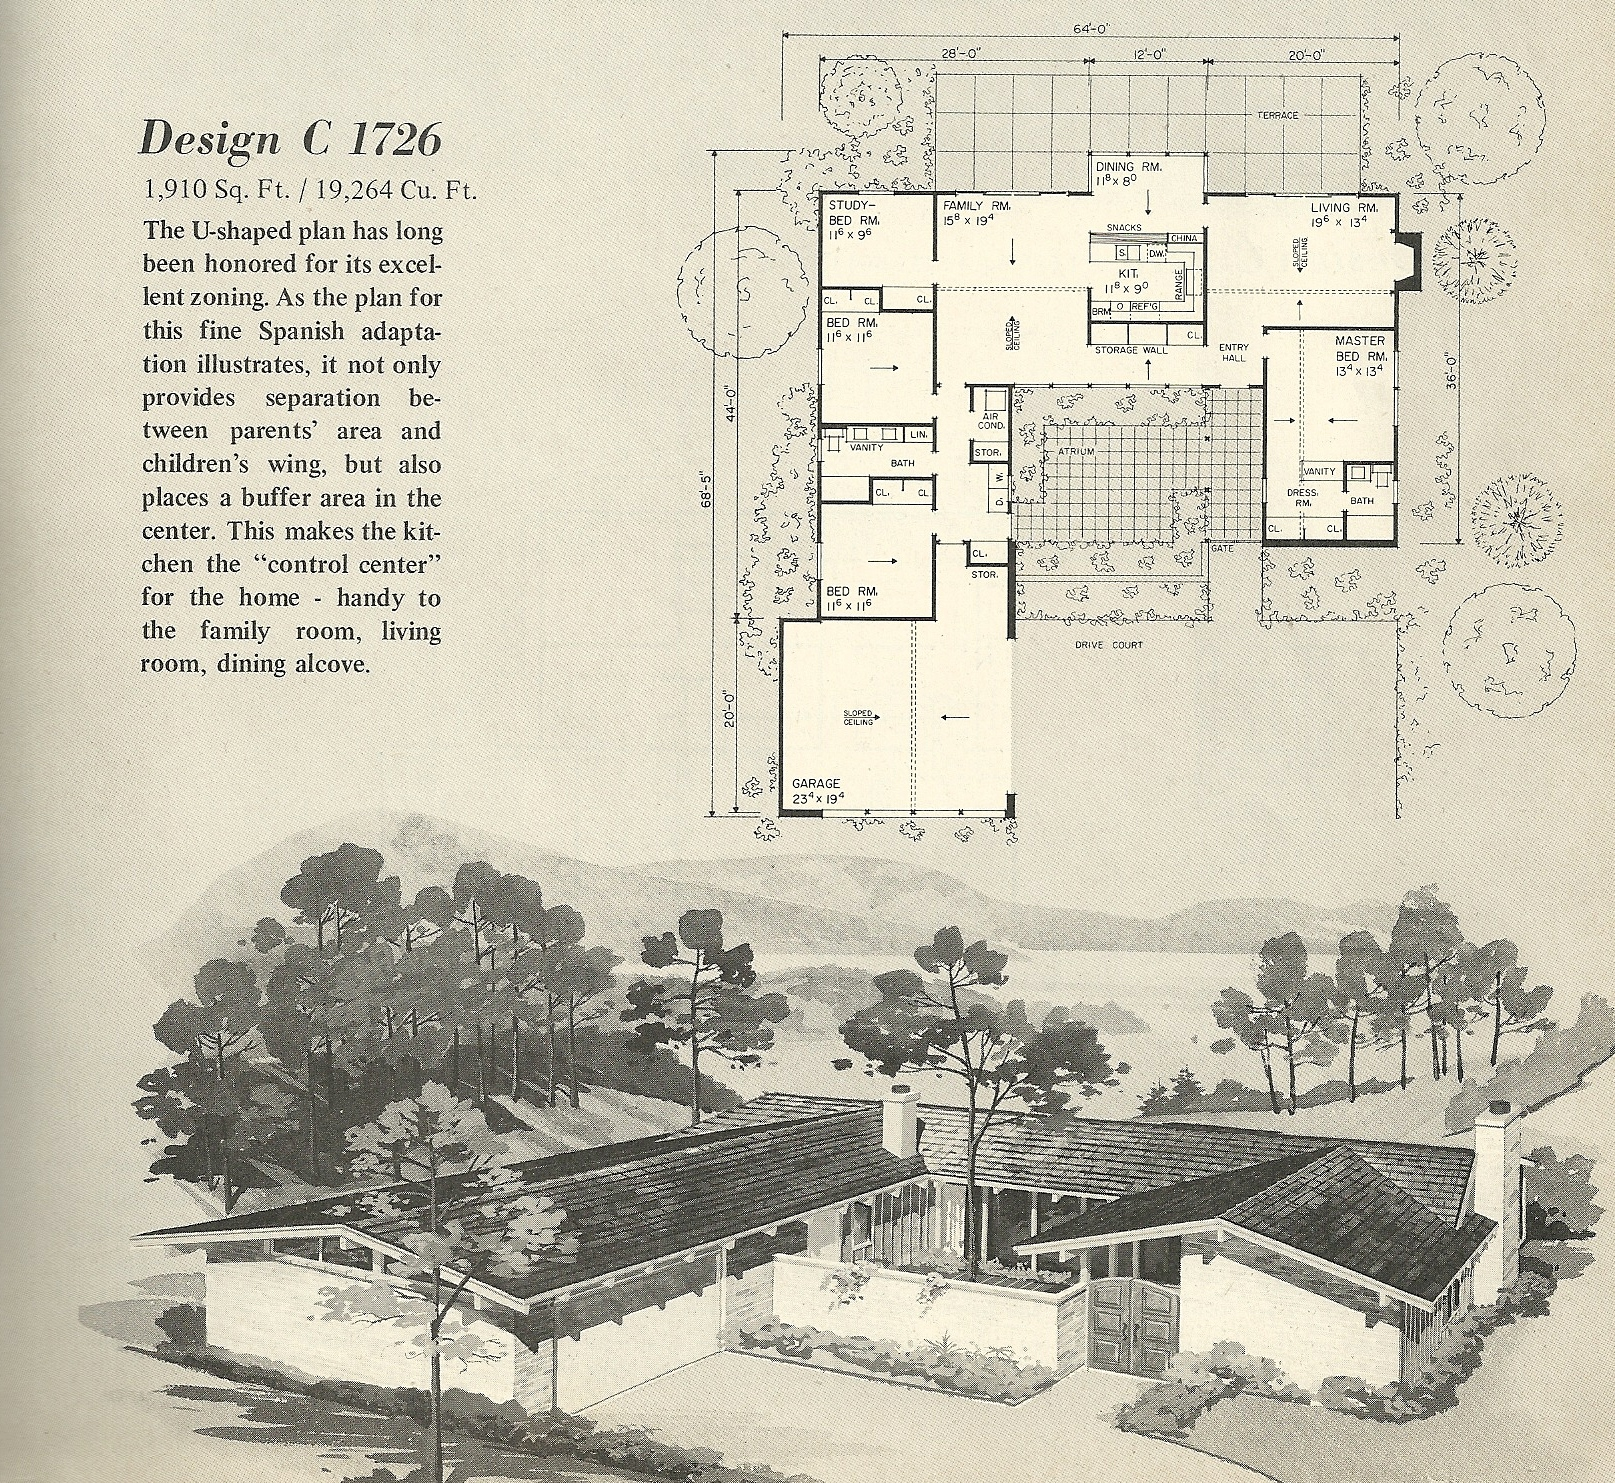 Vintage house plans 1726 antique alter ego - Retro home design ...